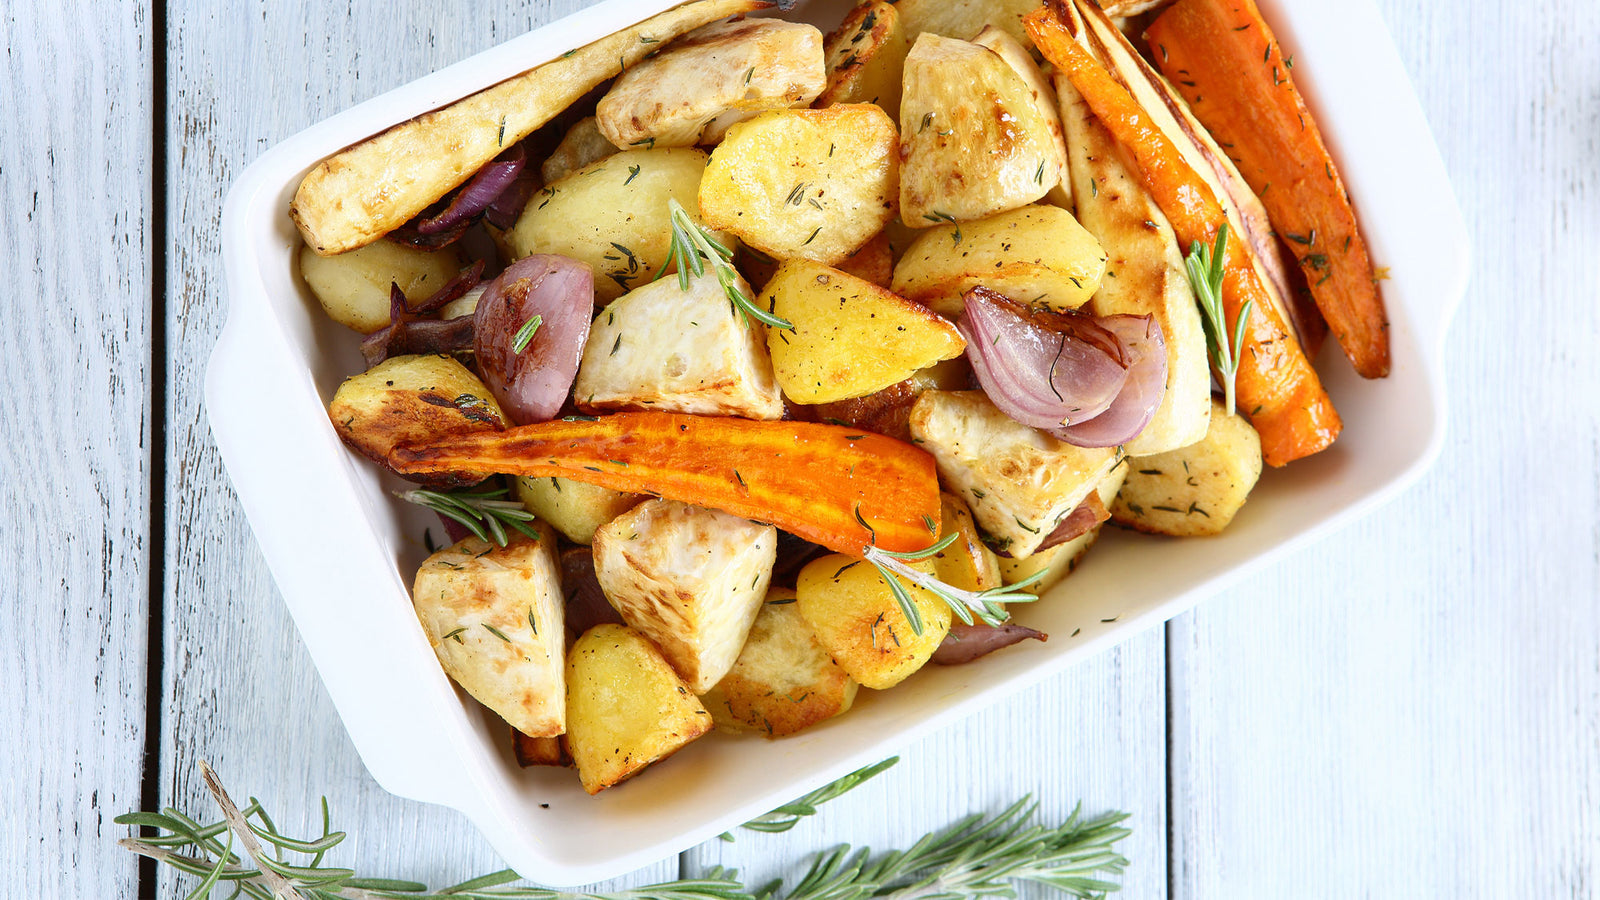 How to Roast Vegetables in the Oven